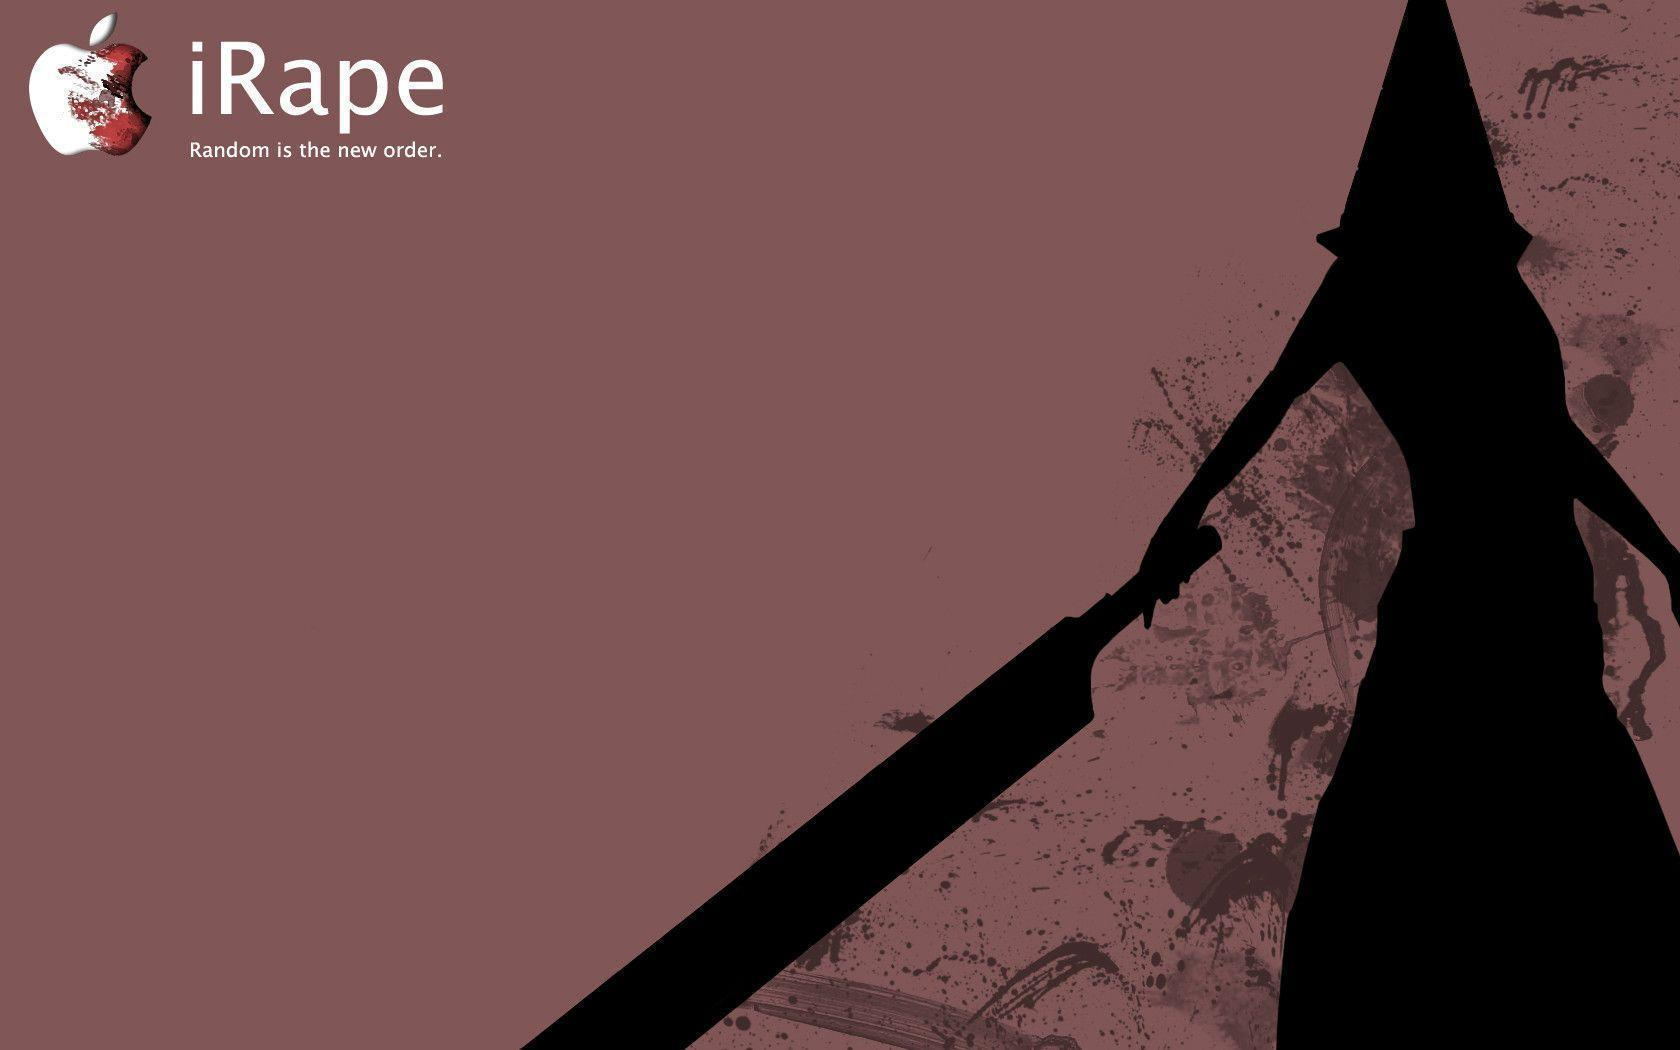 pyramid head wallpaper 1280x800 - photo #14